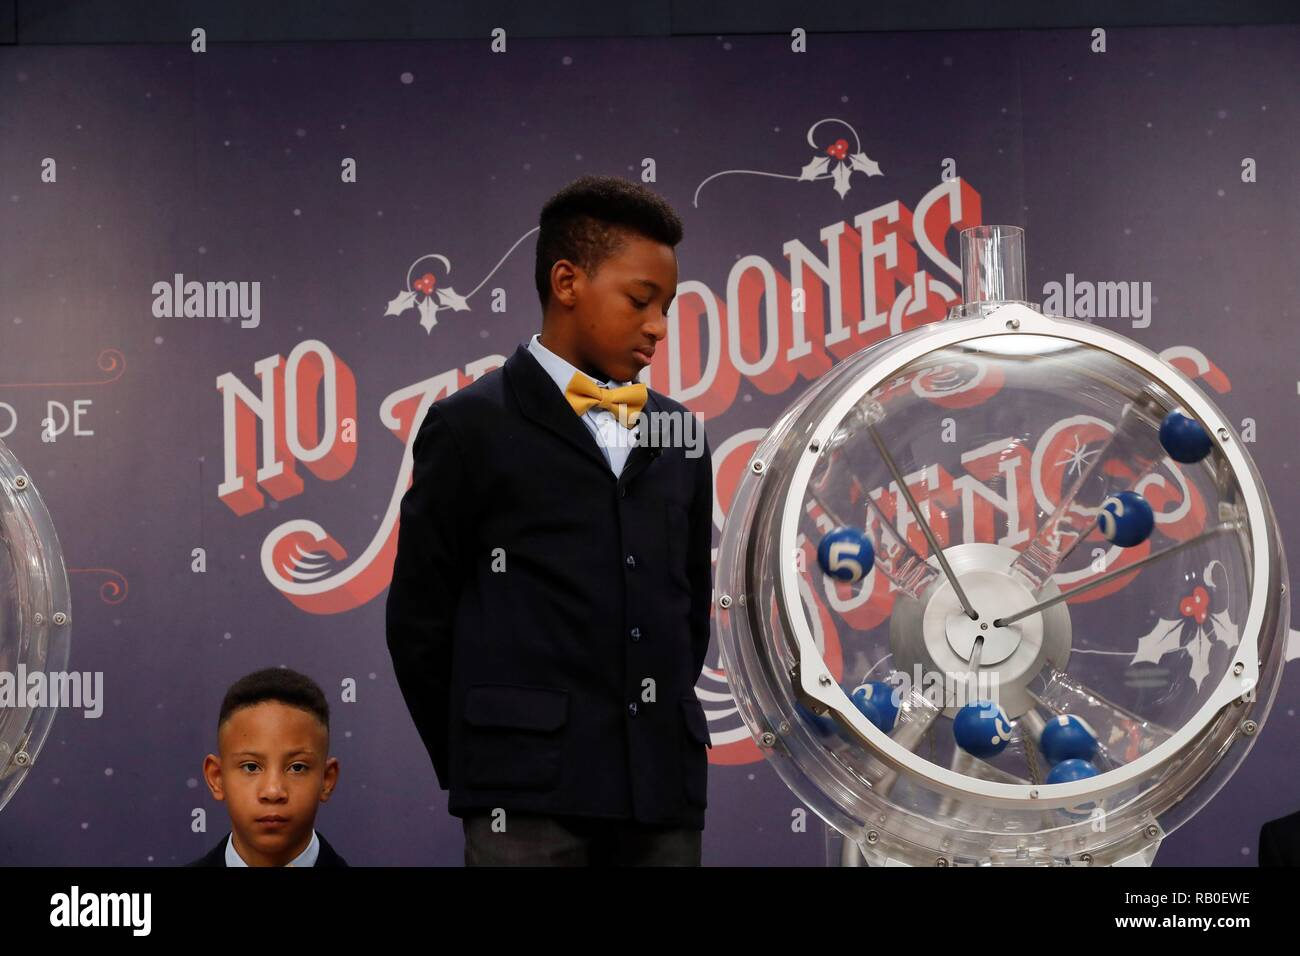 Madrid, Spain. 06th Jan, 2019. A boy looks at a lottery drum during 'El Nino' lottery draw in Madrid, Spain, 06 January 2019. Spain holds its traditional lottery draw 'El Nino' (the kid) on Epiphany Day every year and, although its prizes are less substantial than the famous Christmas draw 'El Gordo' (the Fat One), Spaniards celebrate this draw as part of the Christmas joy. Credit: Zipi/EFE/Alamy Live News - Stock Image